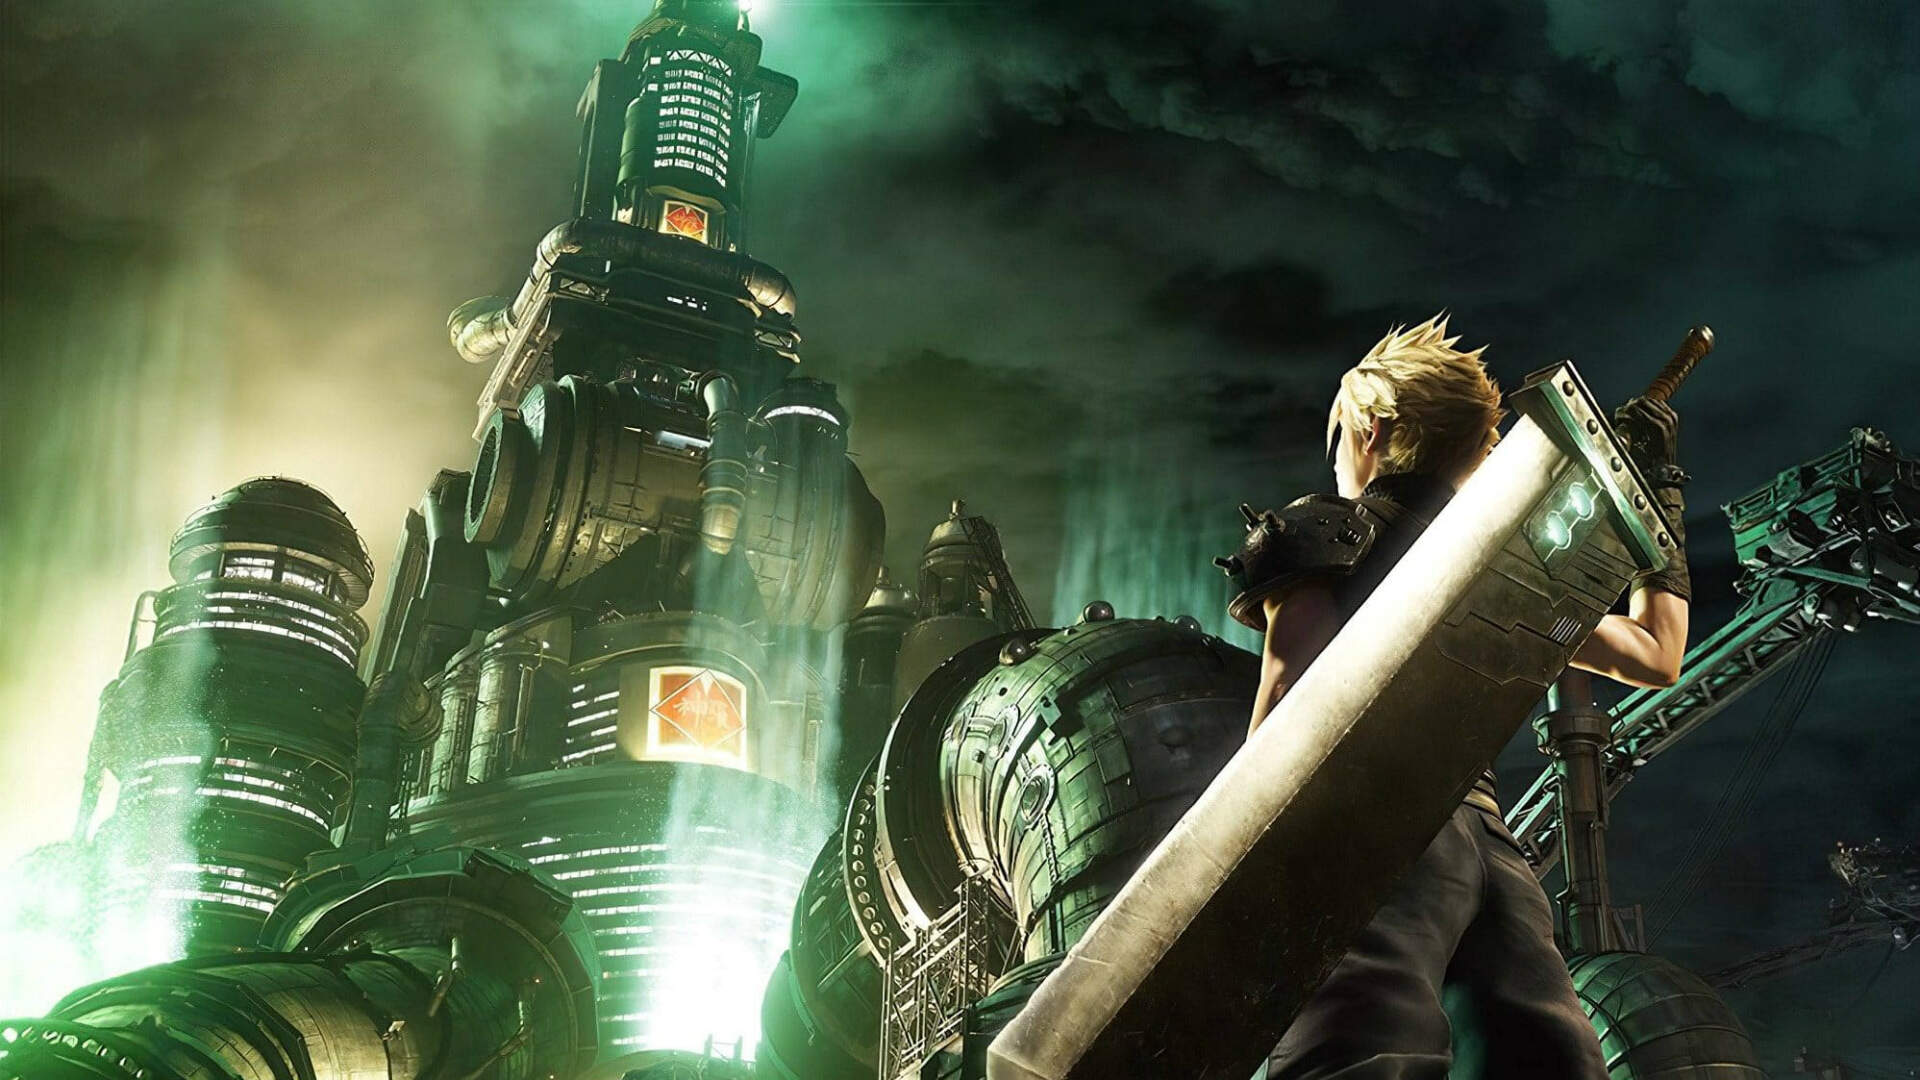 Countdown to Final Fantasy 7 Remake